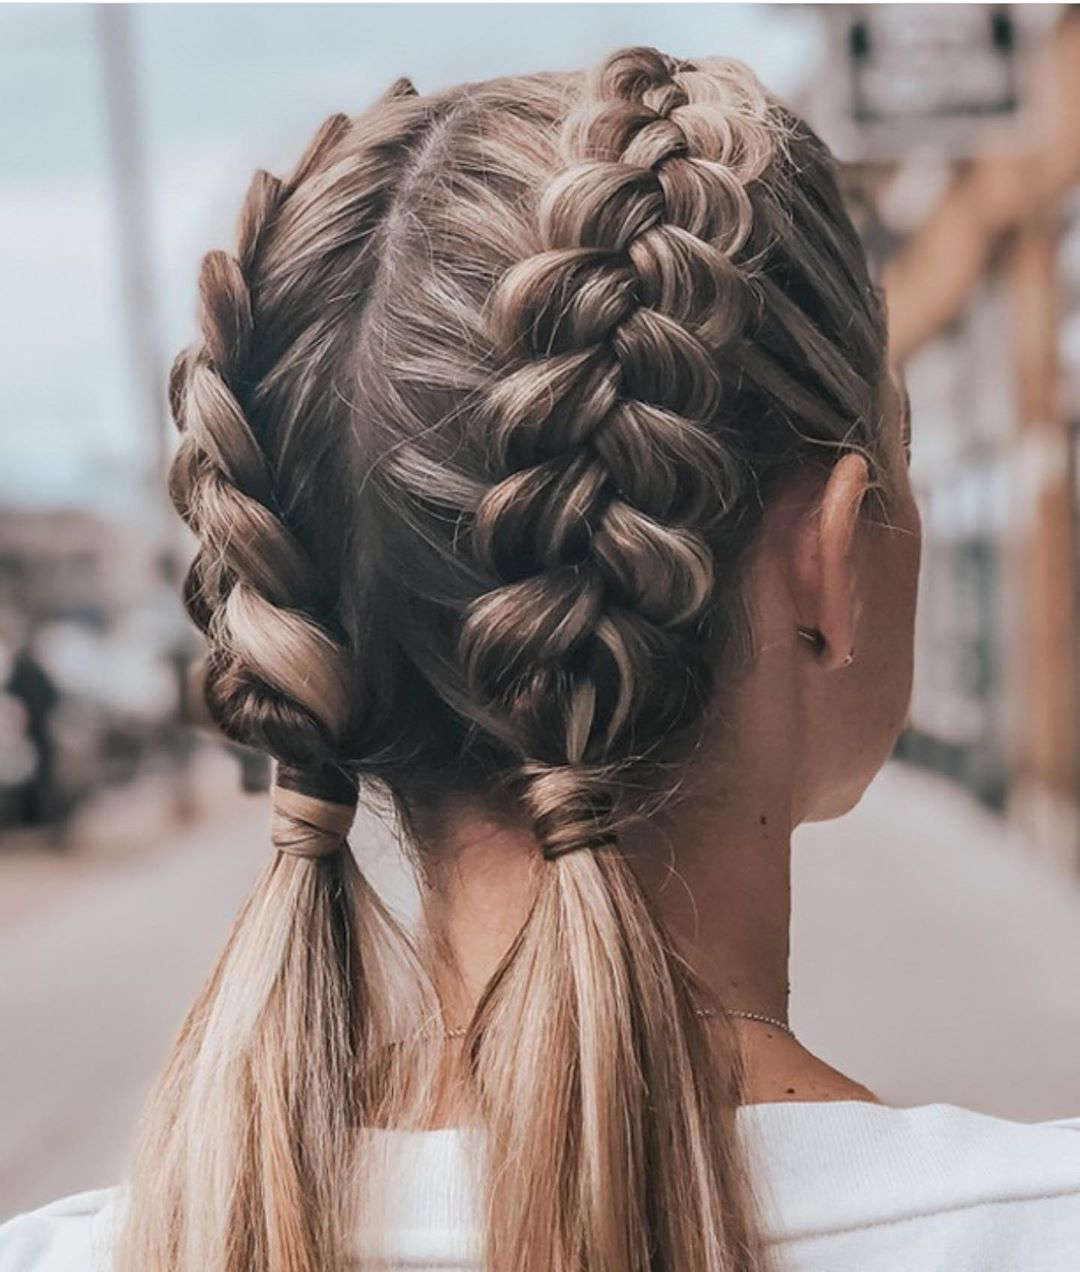 Trendy Braided Hairstyles in Summer - Ponytail Hairstyles for Long Hair